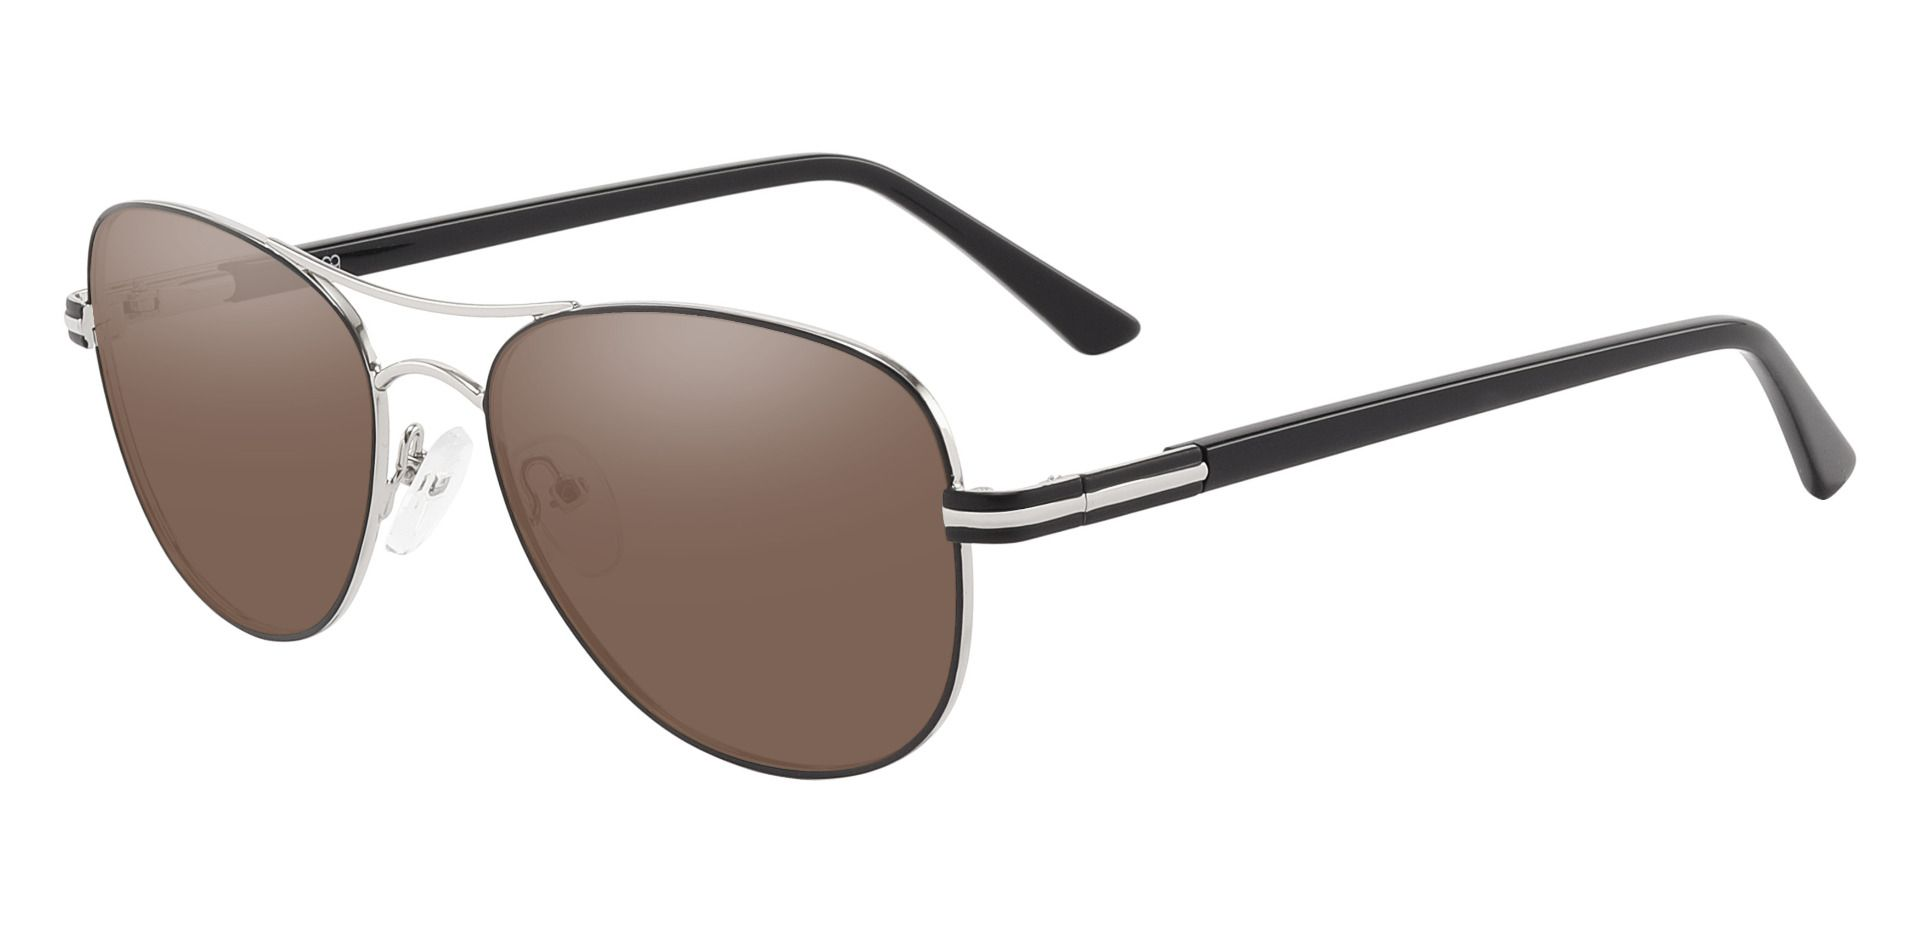 Reeves Aviator Prescription Sunglasses - Silver Frame With Brown Lenses